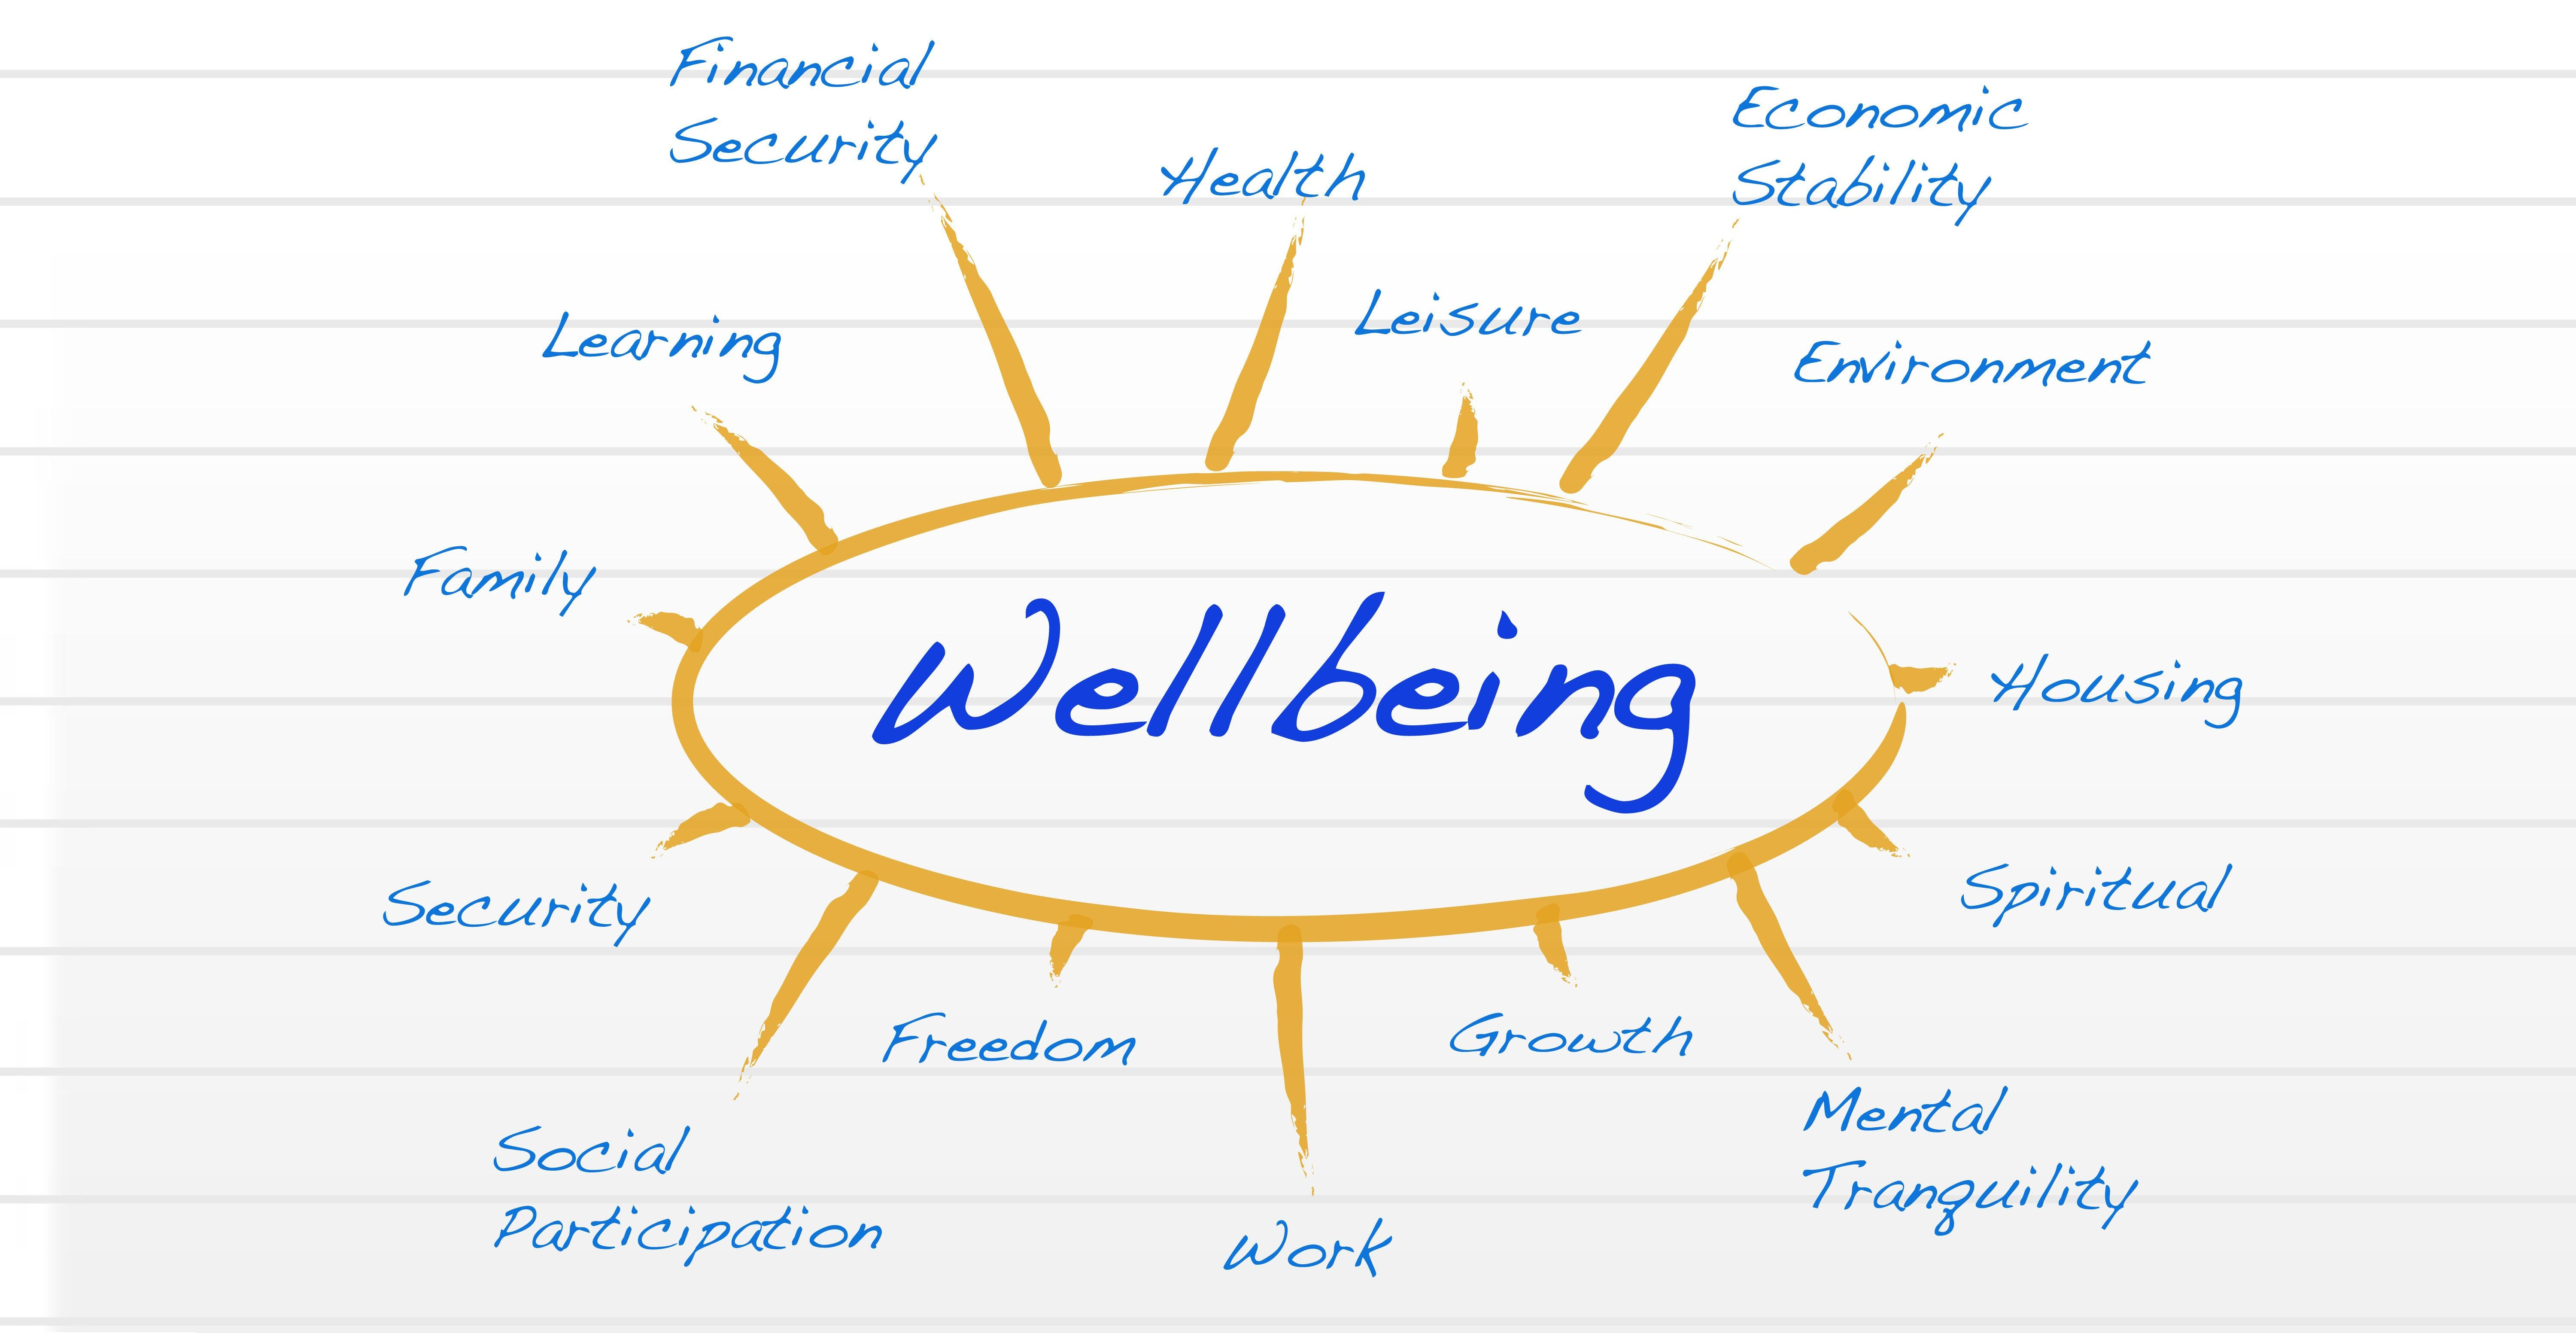 Fulfill Your Dreams Of Wellbeing and Financial Freedom for $1 (USD).